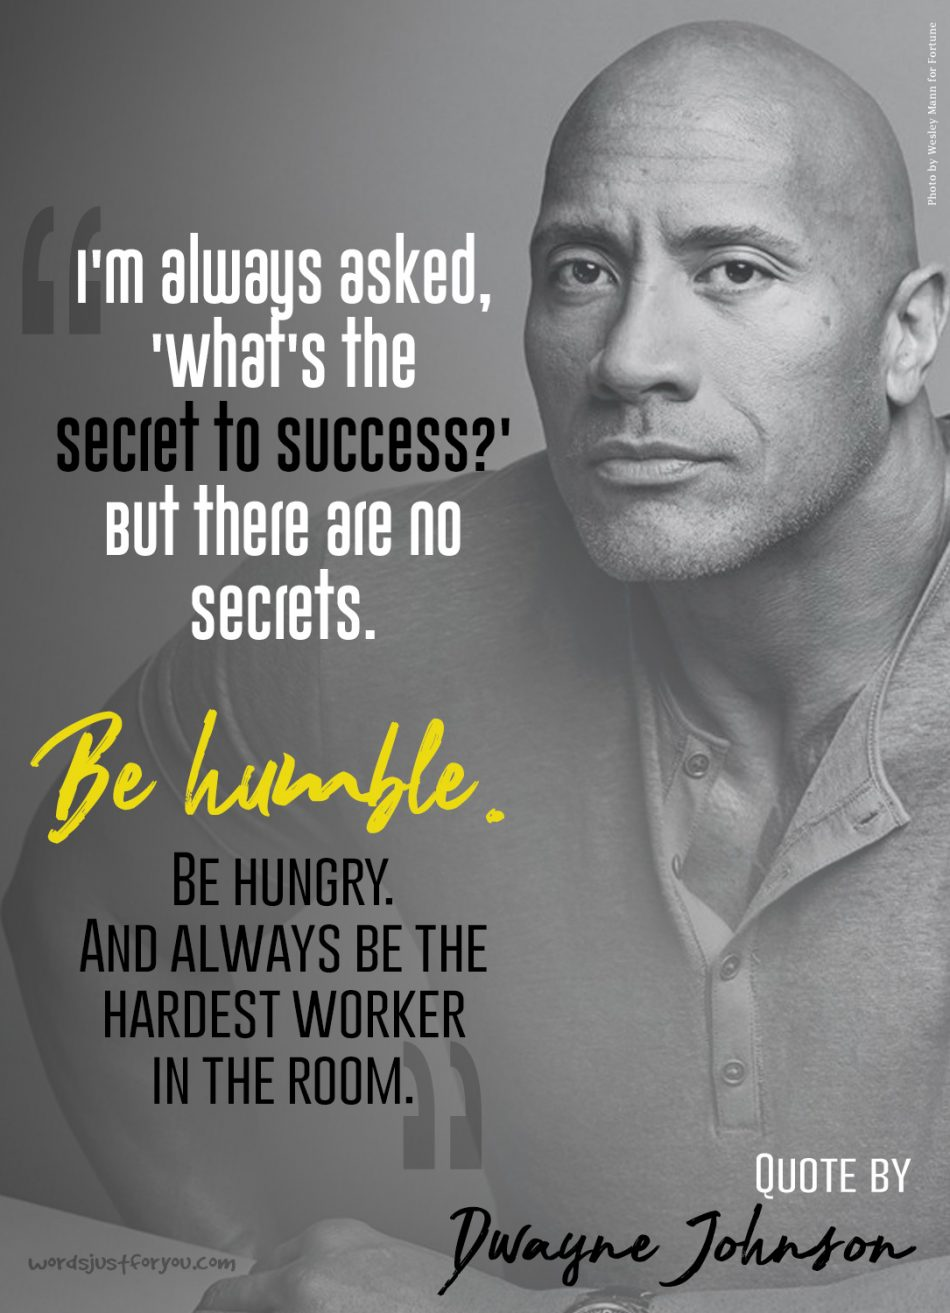 Famous Quote on Success by Dwayne Johnson